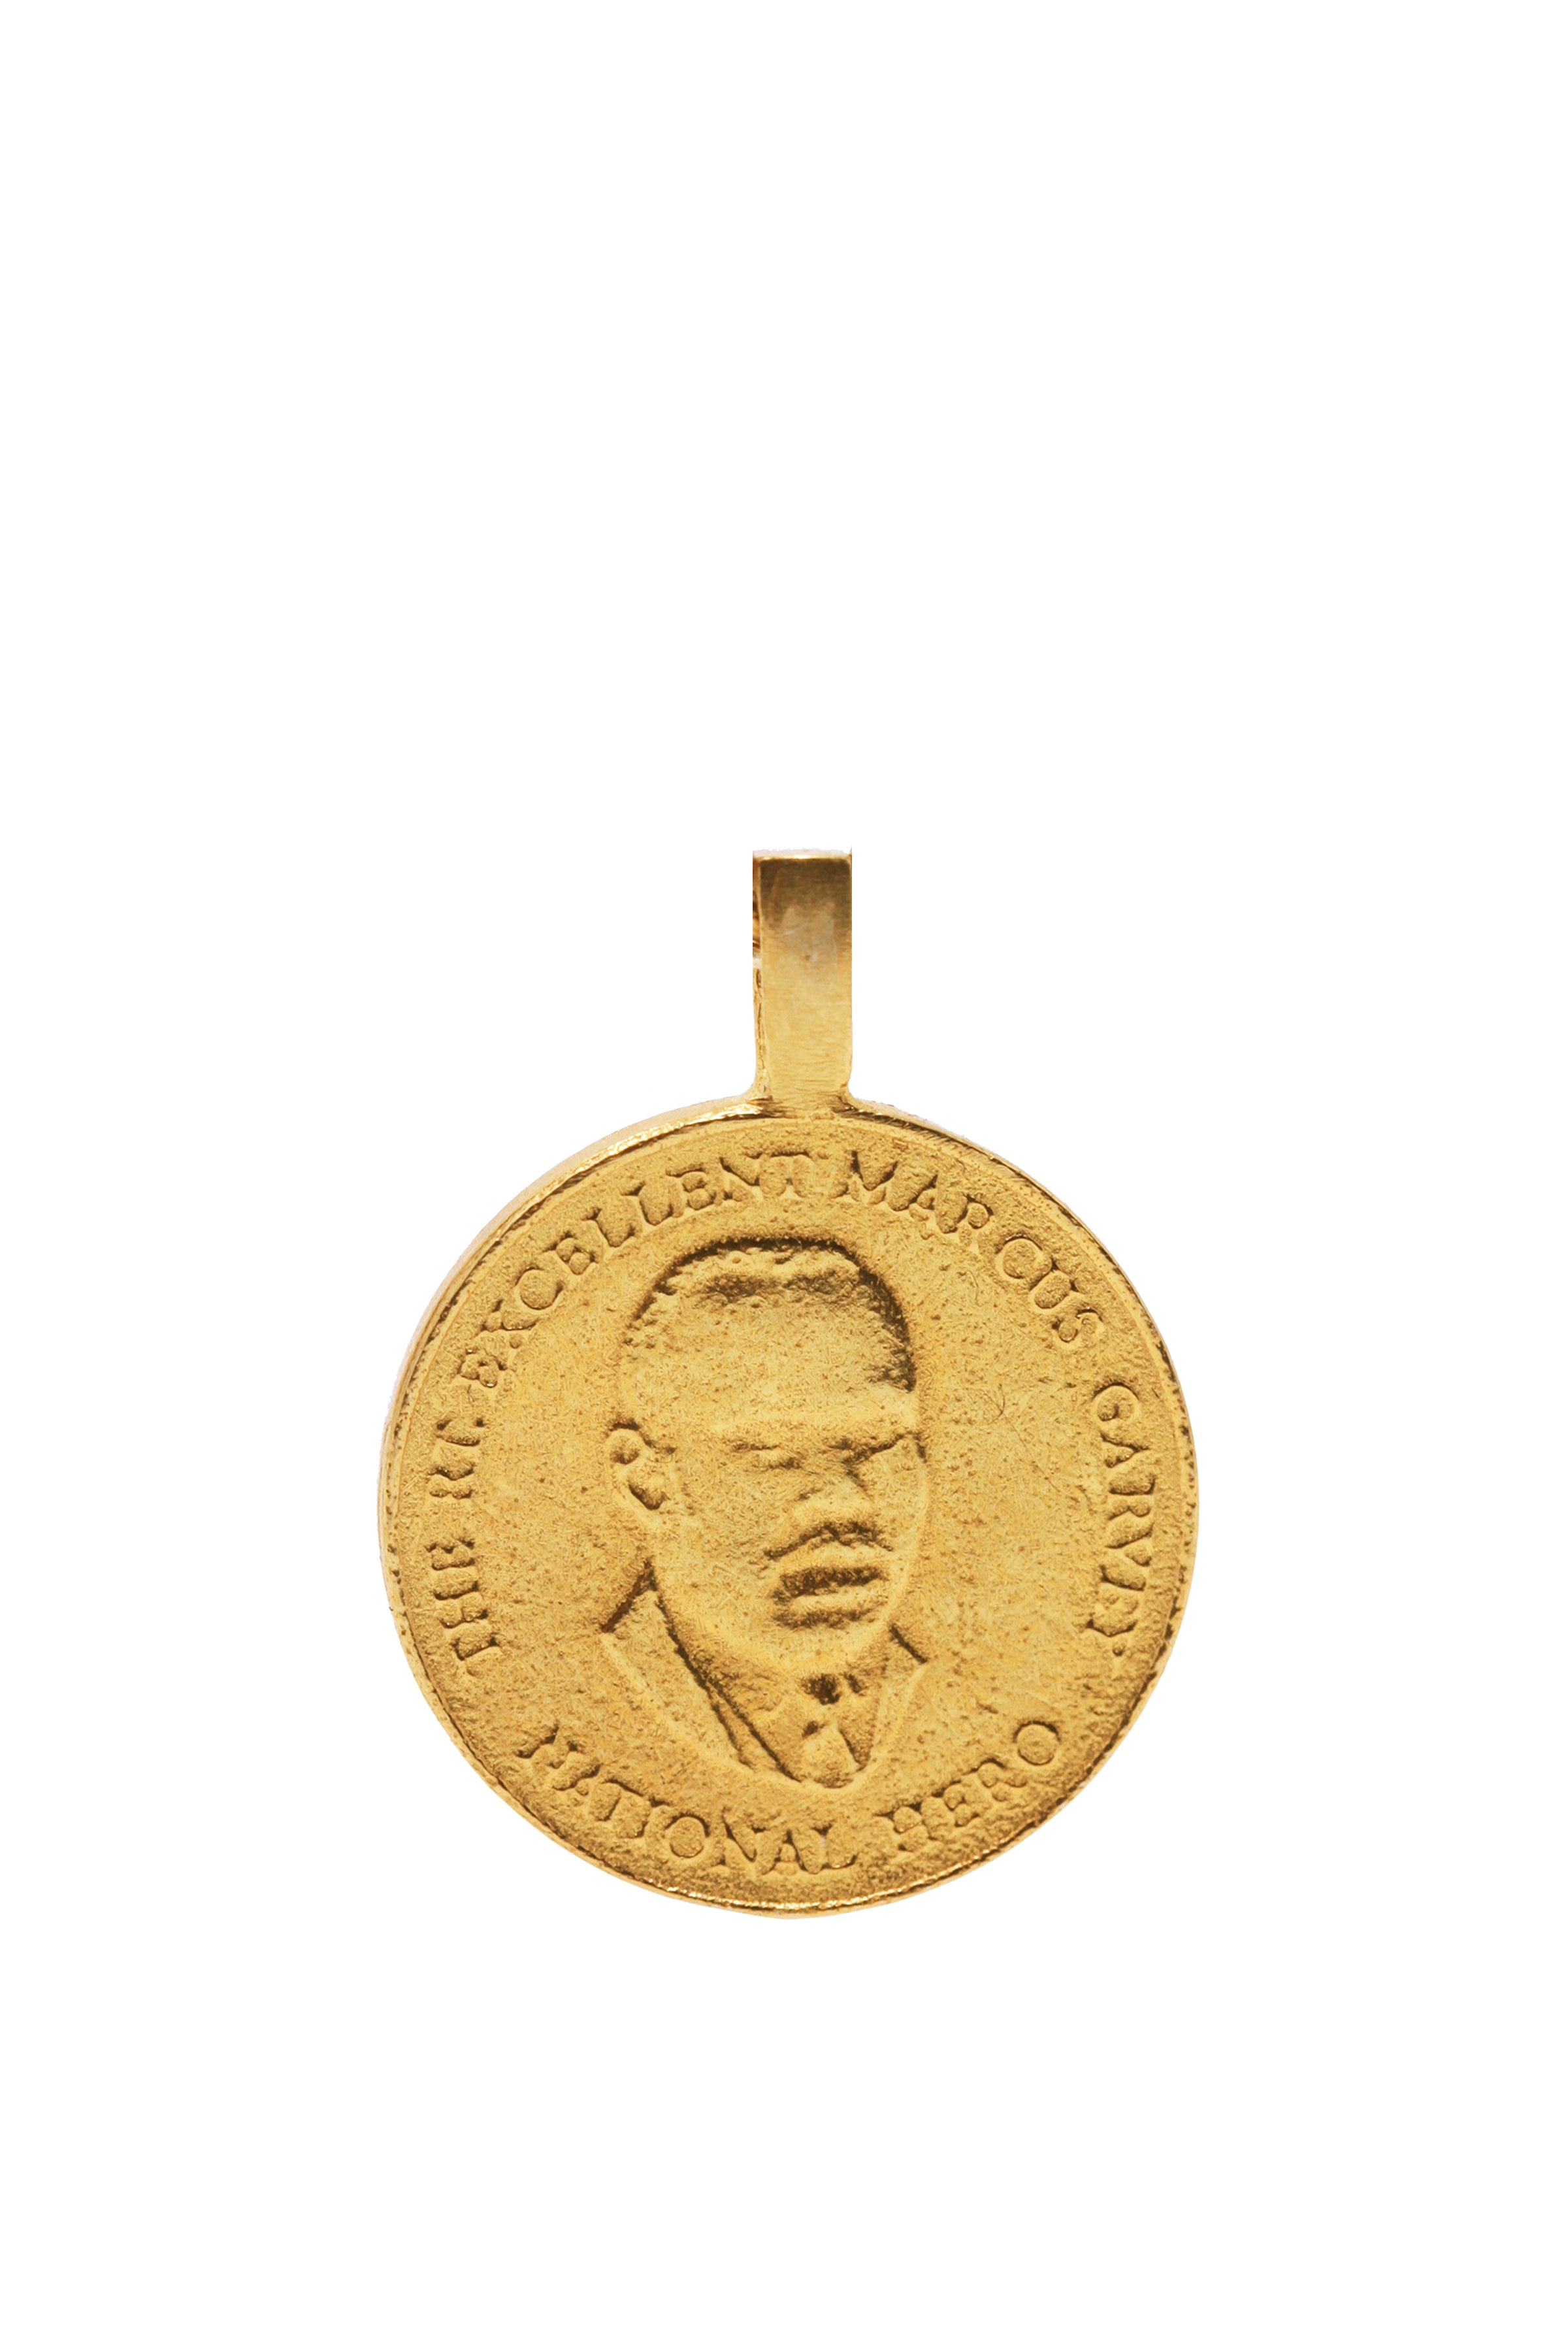 THE JAMAICA Garveyite Pendant